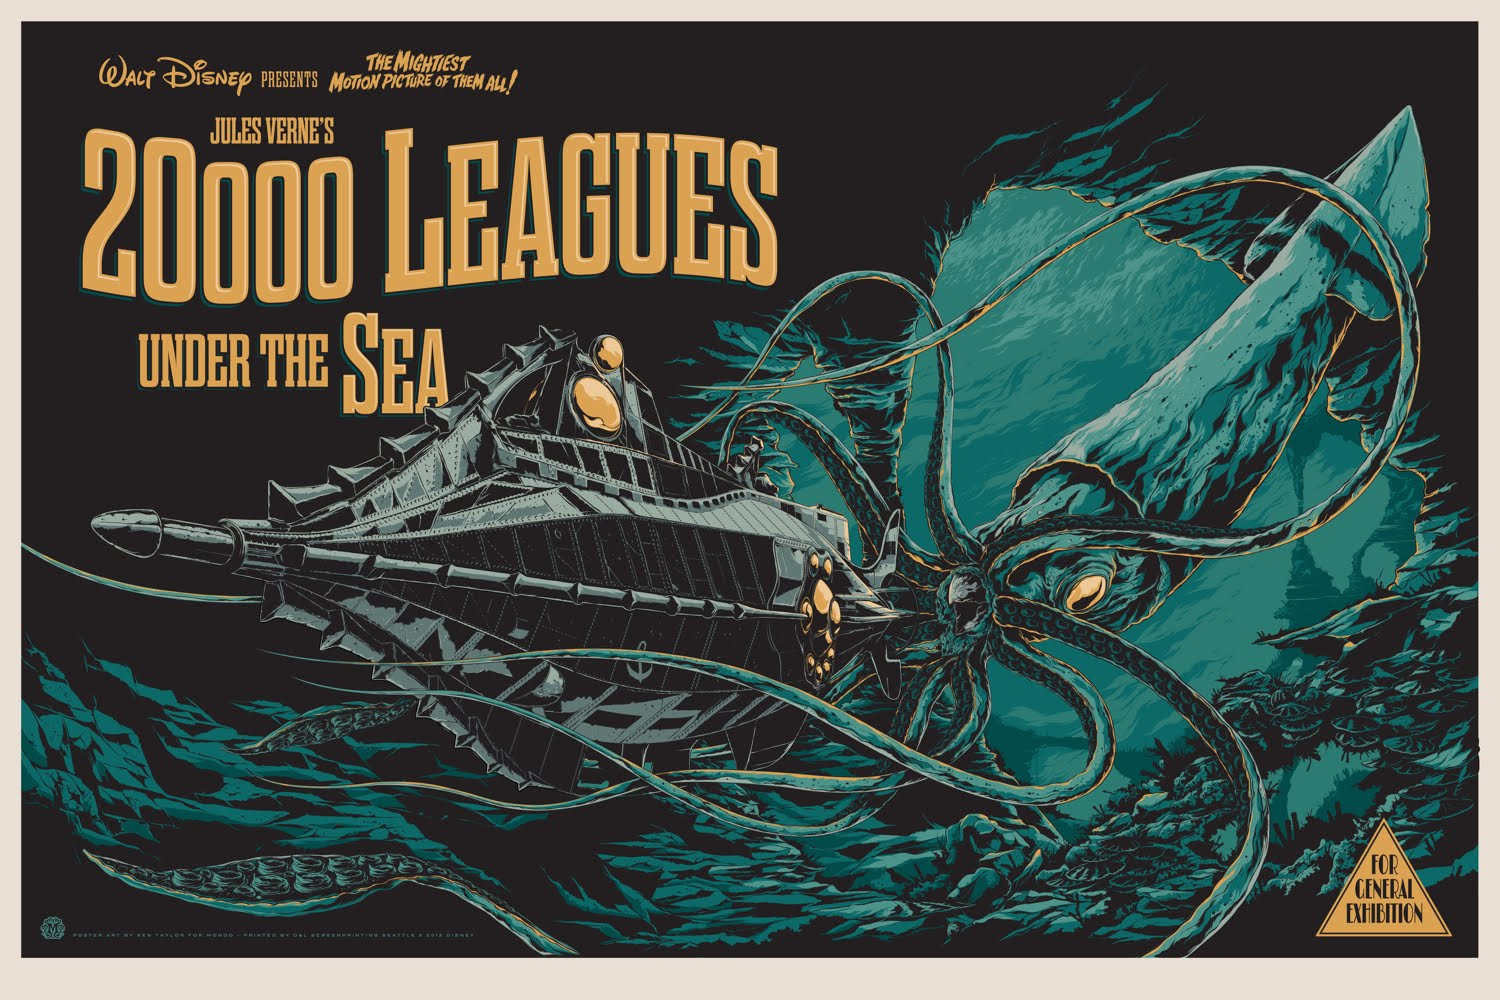 Inside The Rock Poster Frame Blog Disney S 20 000 Leagues